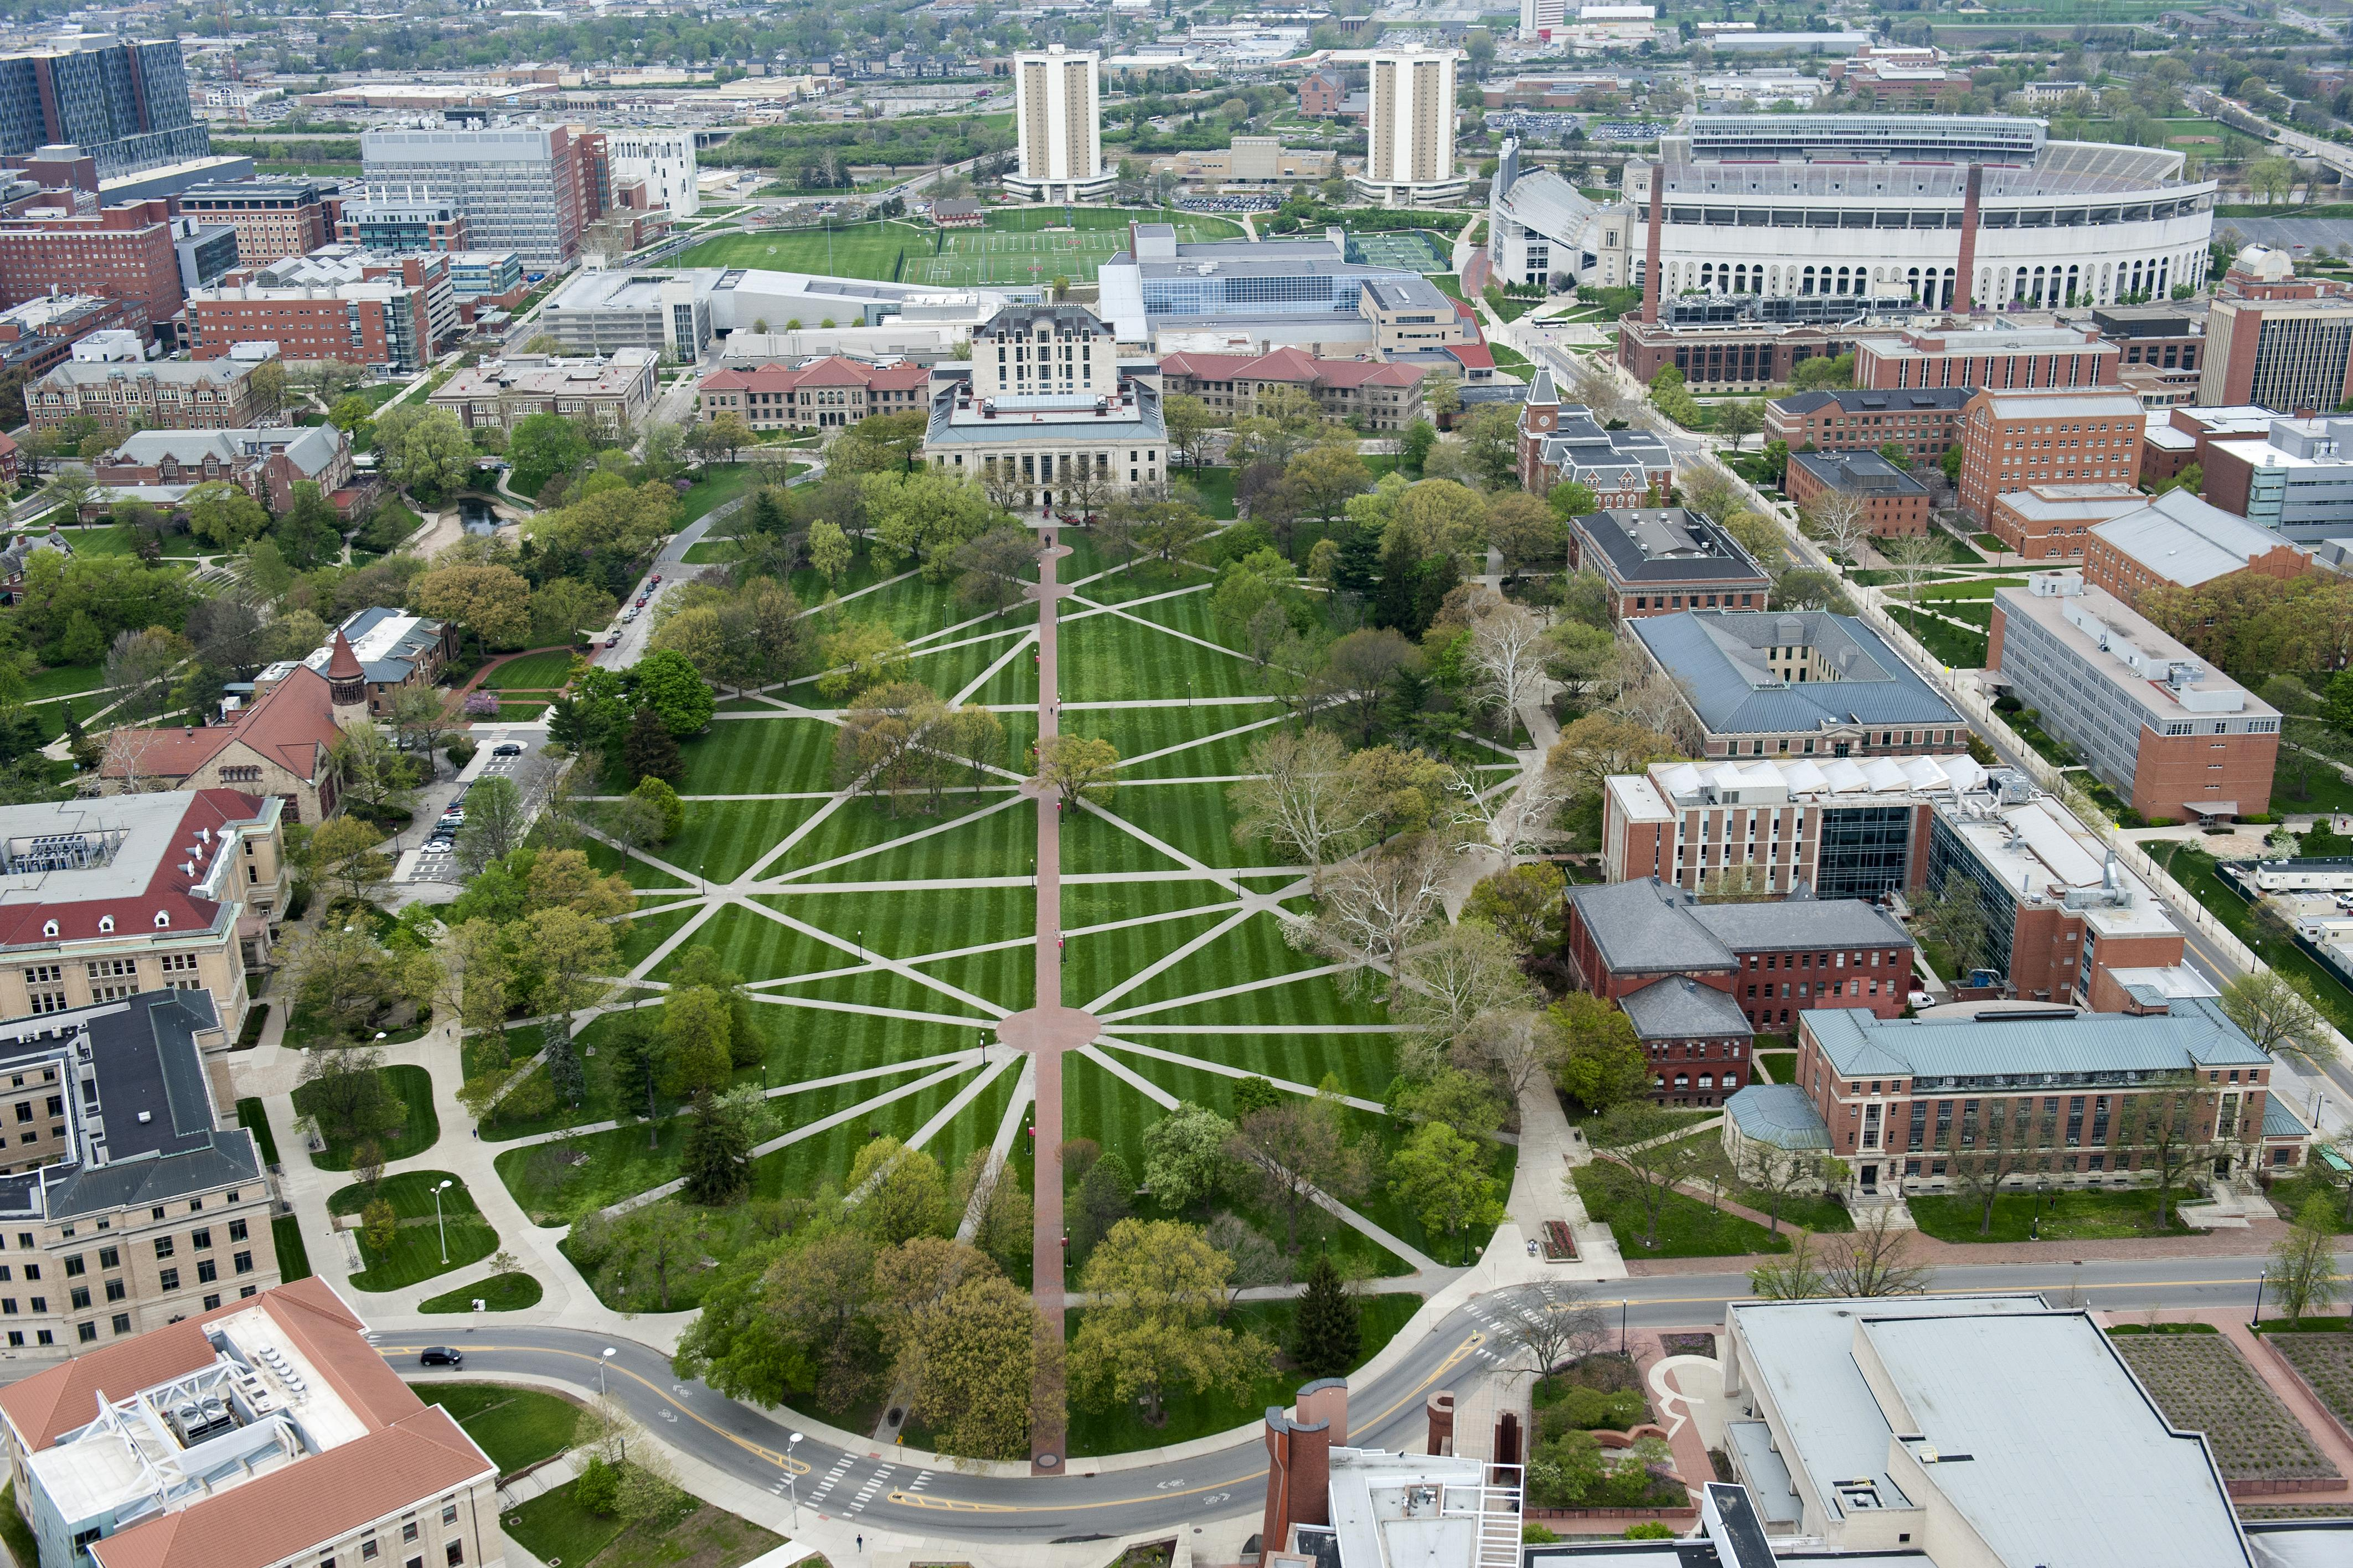 Arial view of Ohio state